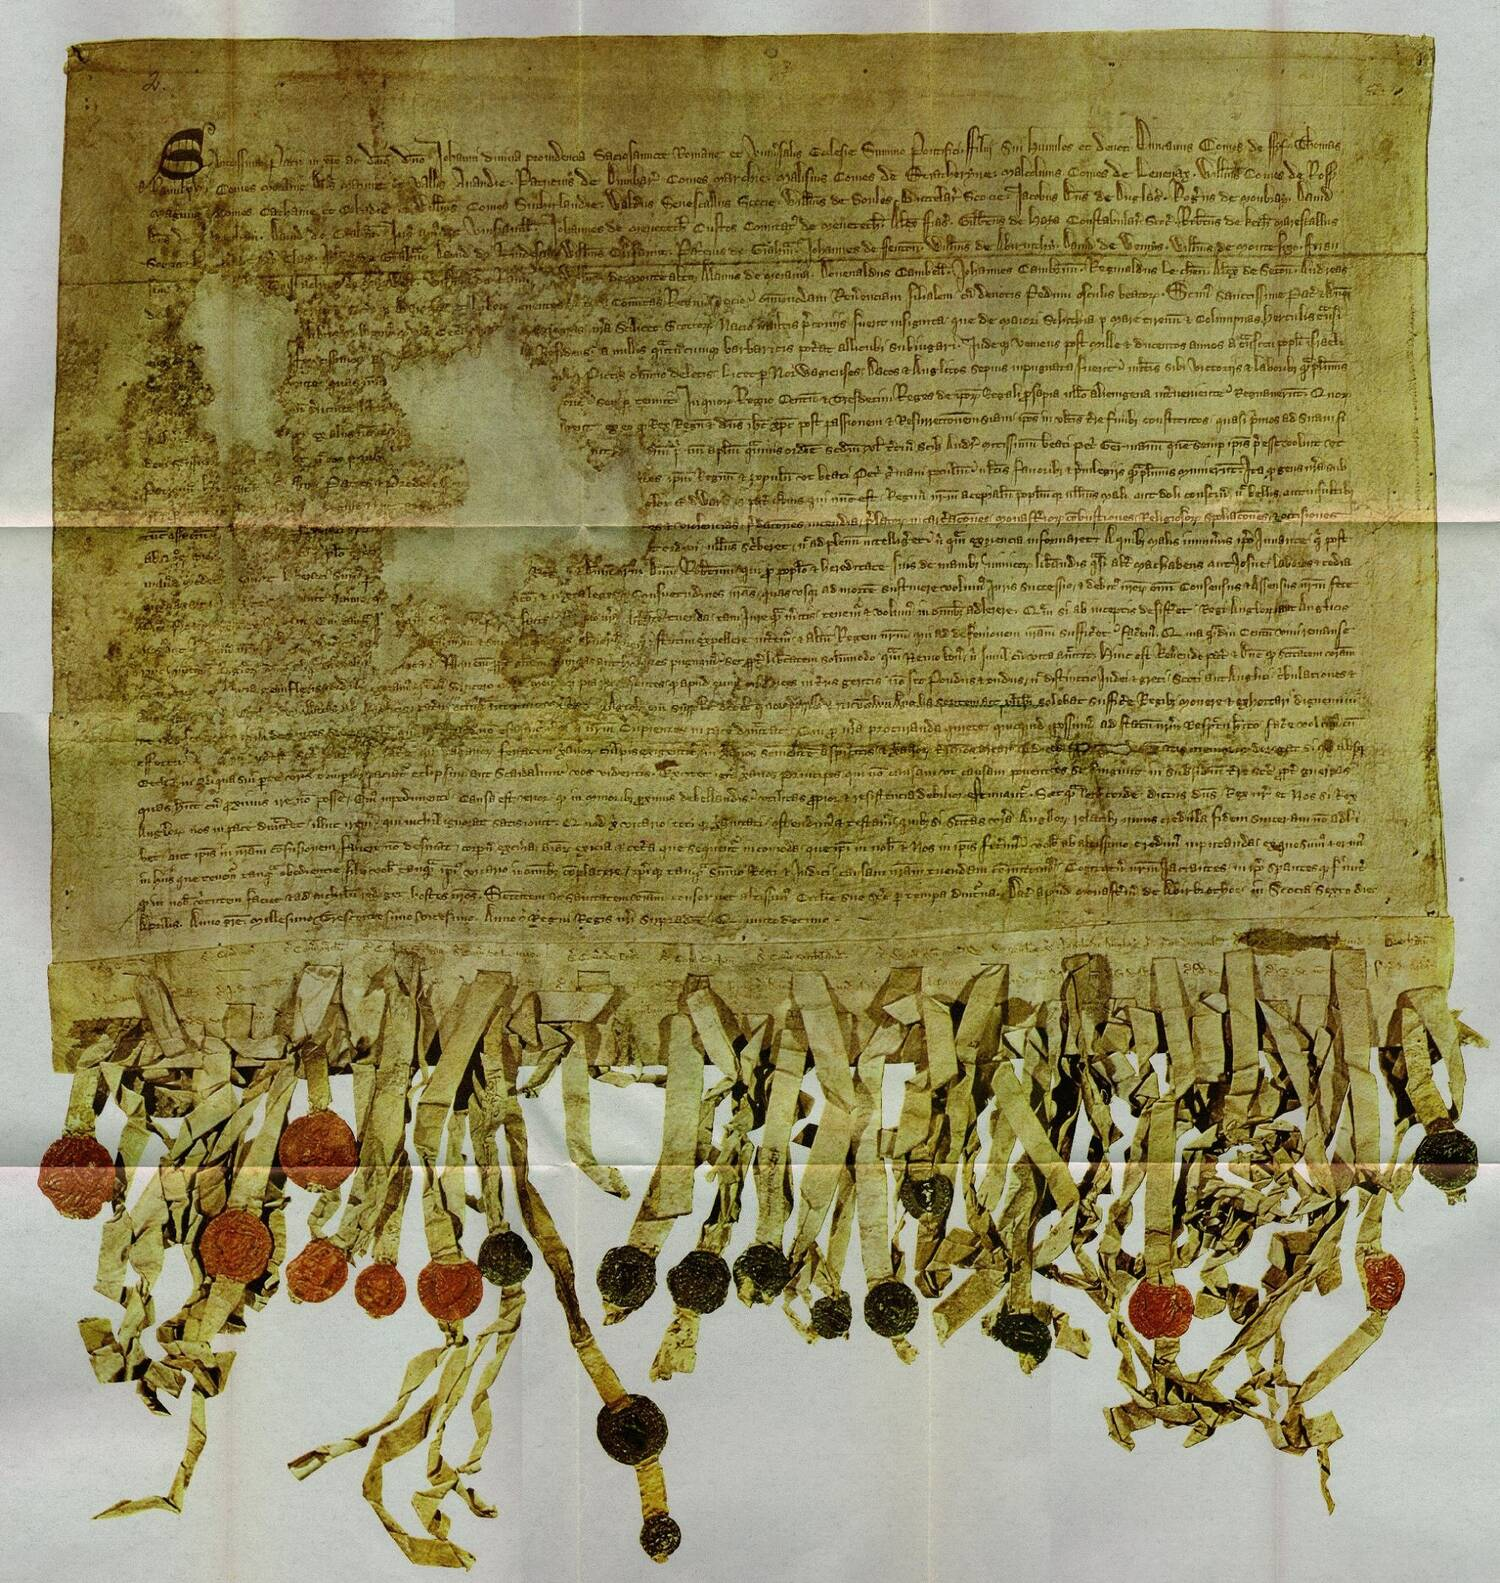 The manuscript of the Declaration of Arbroath on yellowed paper. Strips of paper with wax seals are attached to the bottom.